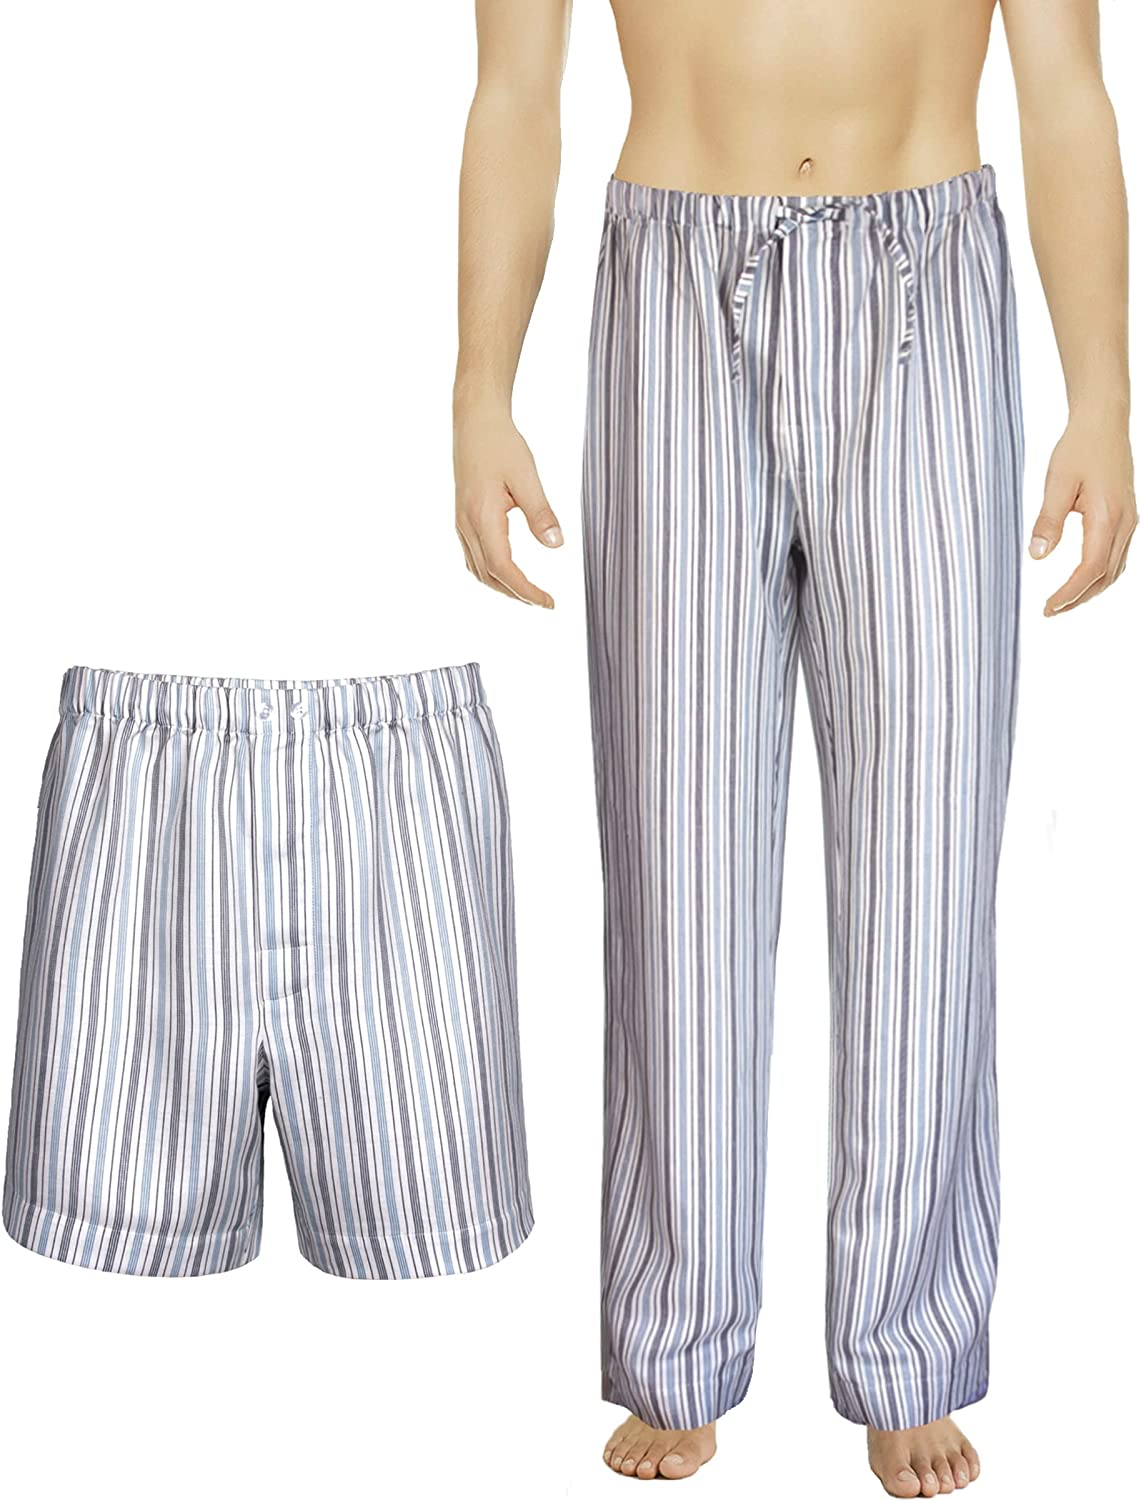 Men's Striped Boxer Shorts + Pajama Pants, Vincenzo Satin Linen Cotton Crafted in Europe